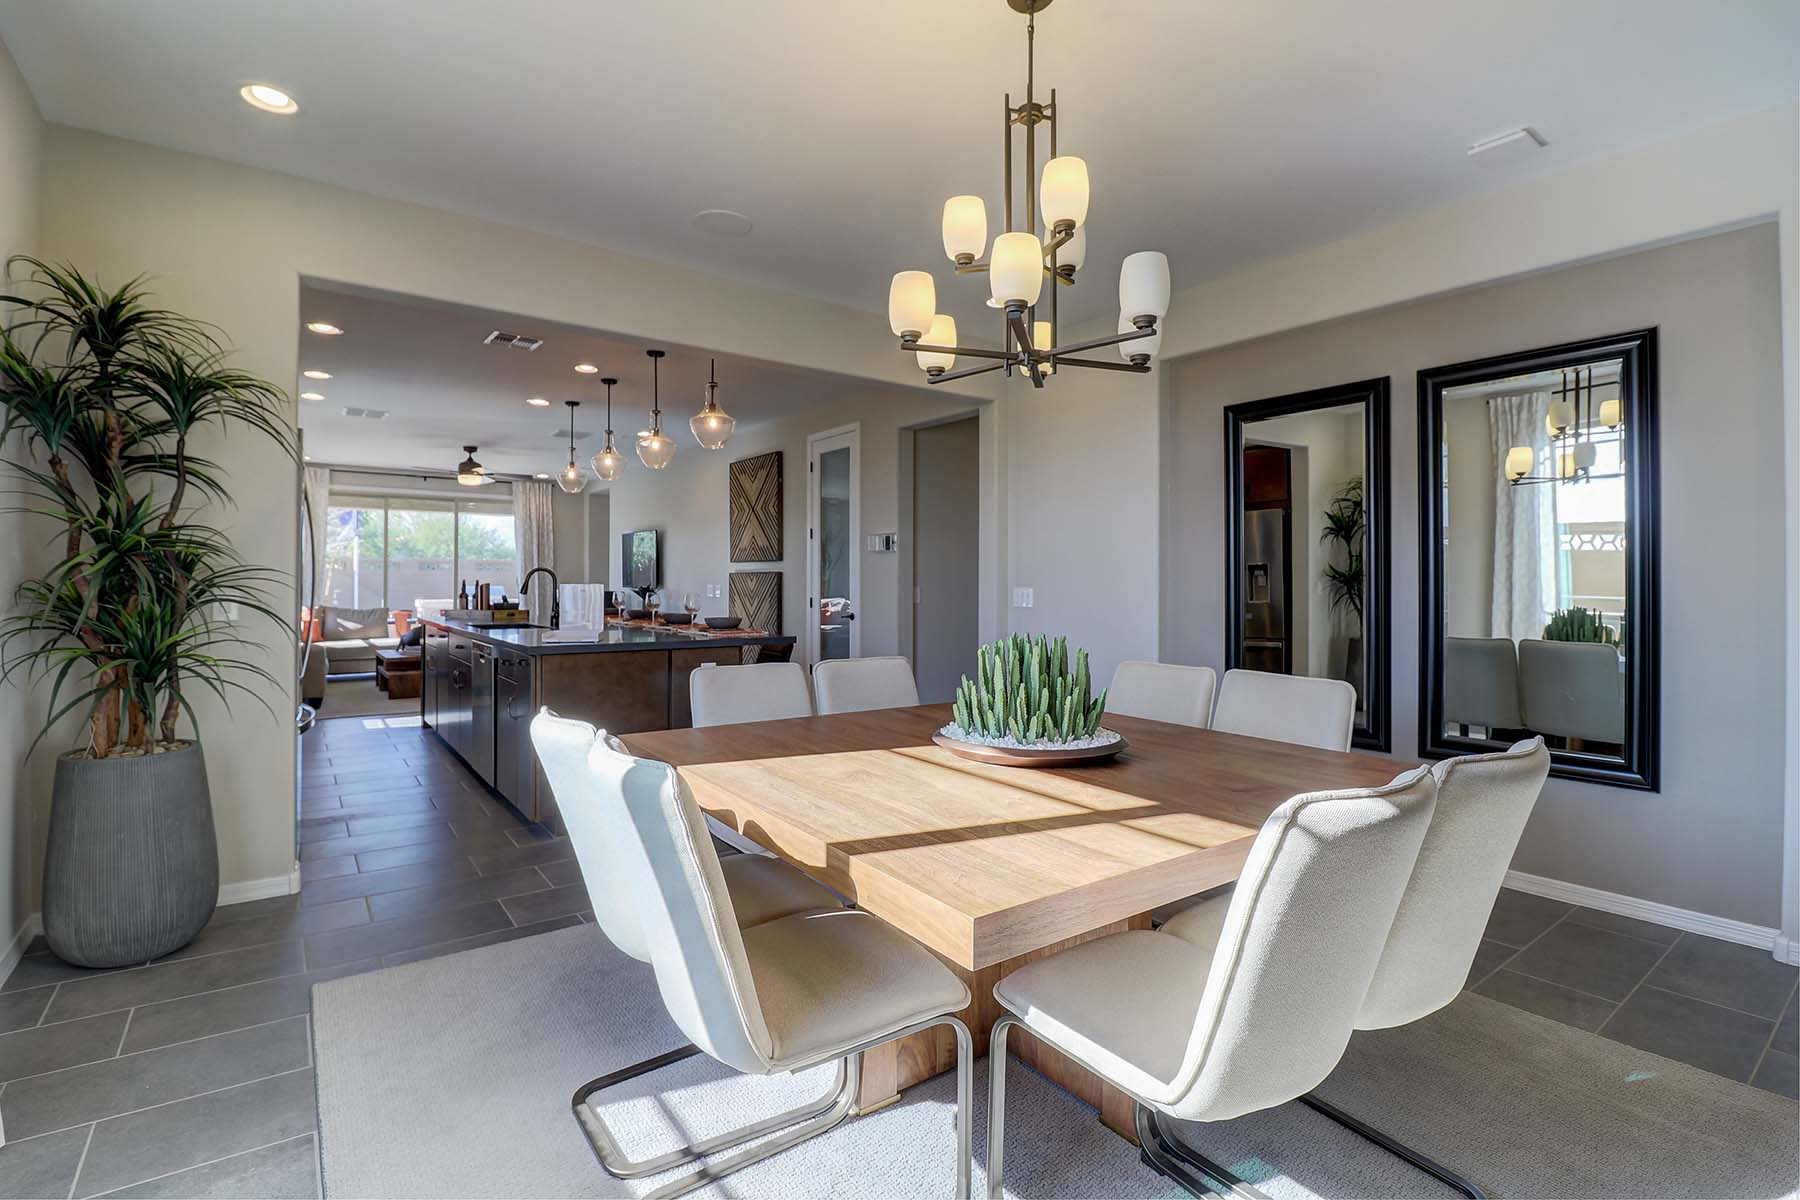 Elwood Plan Dining at Crestwood at Canyon Trails in Goodyear Arizona by Mattamy Homes